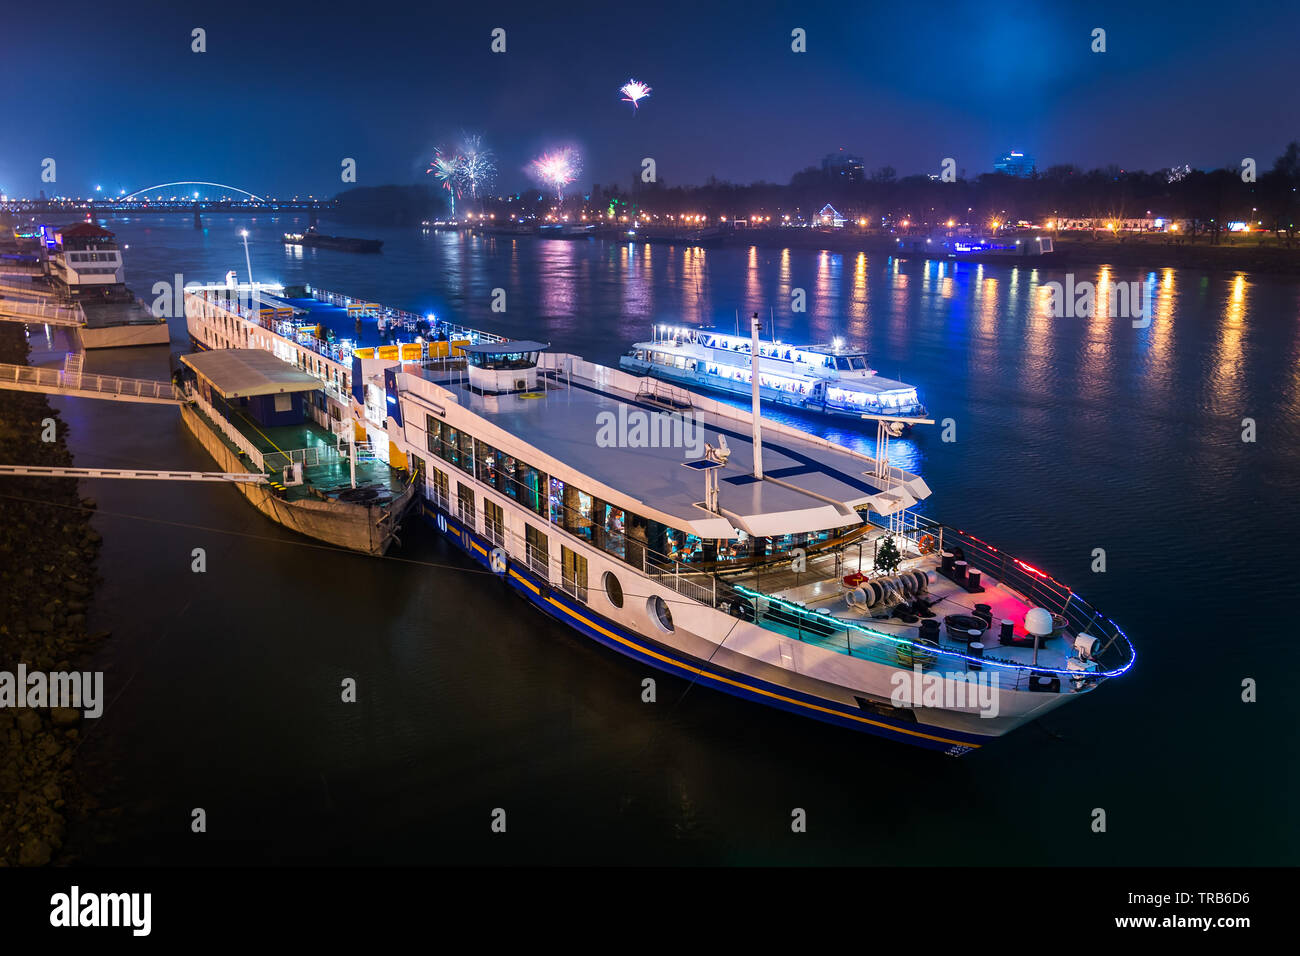 Passenger Boat on the Danube River with Fireworks in Background at Night - Stock Image